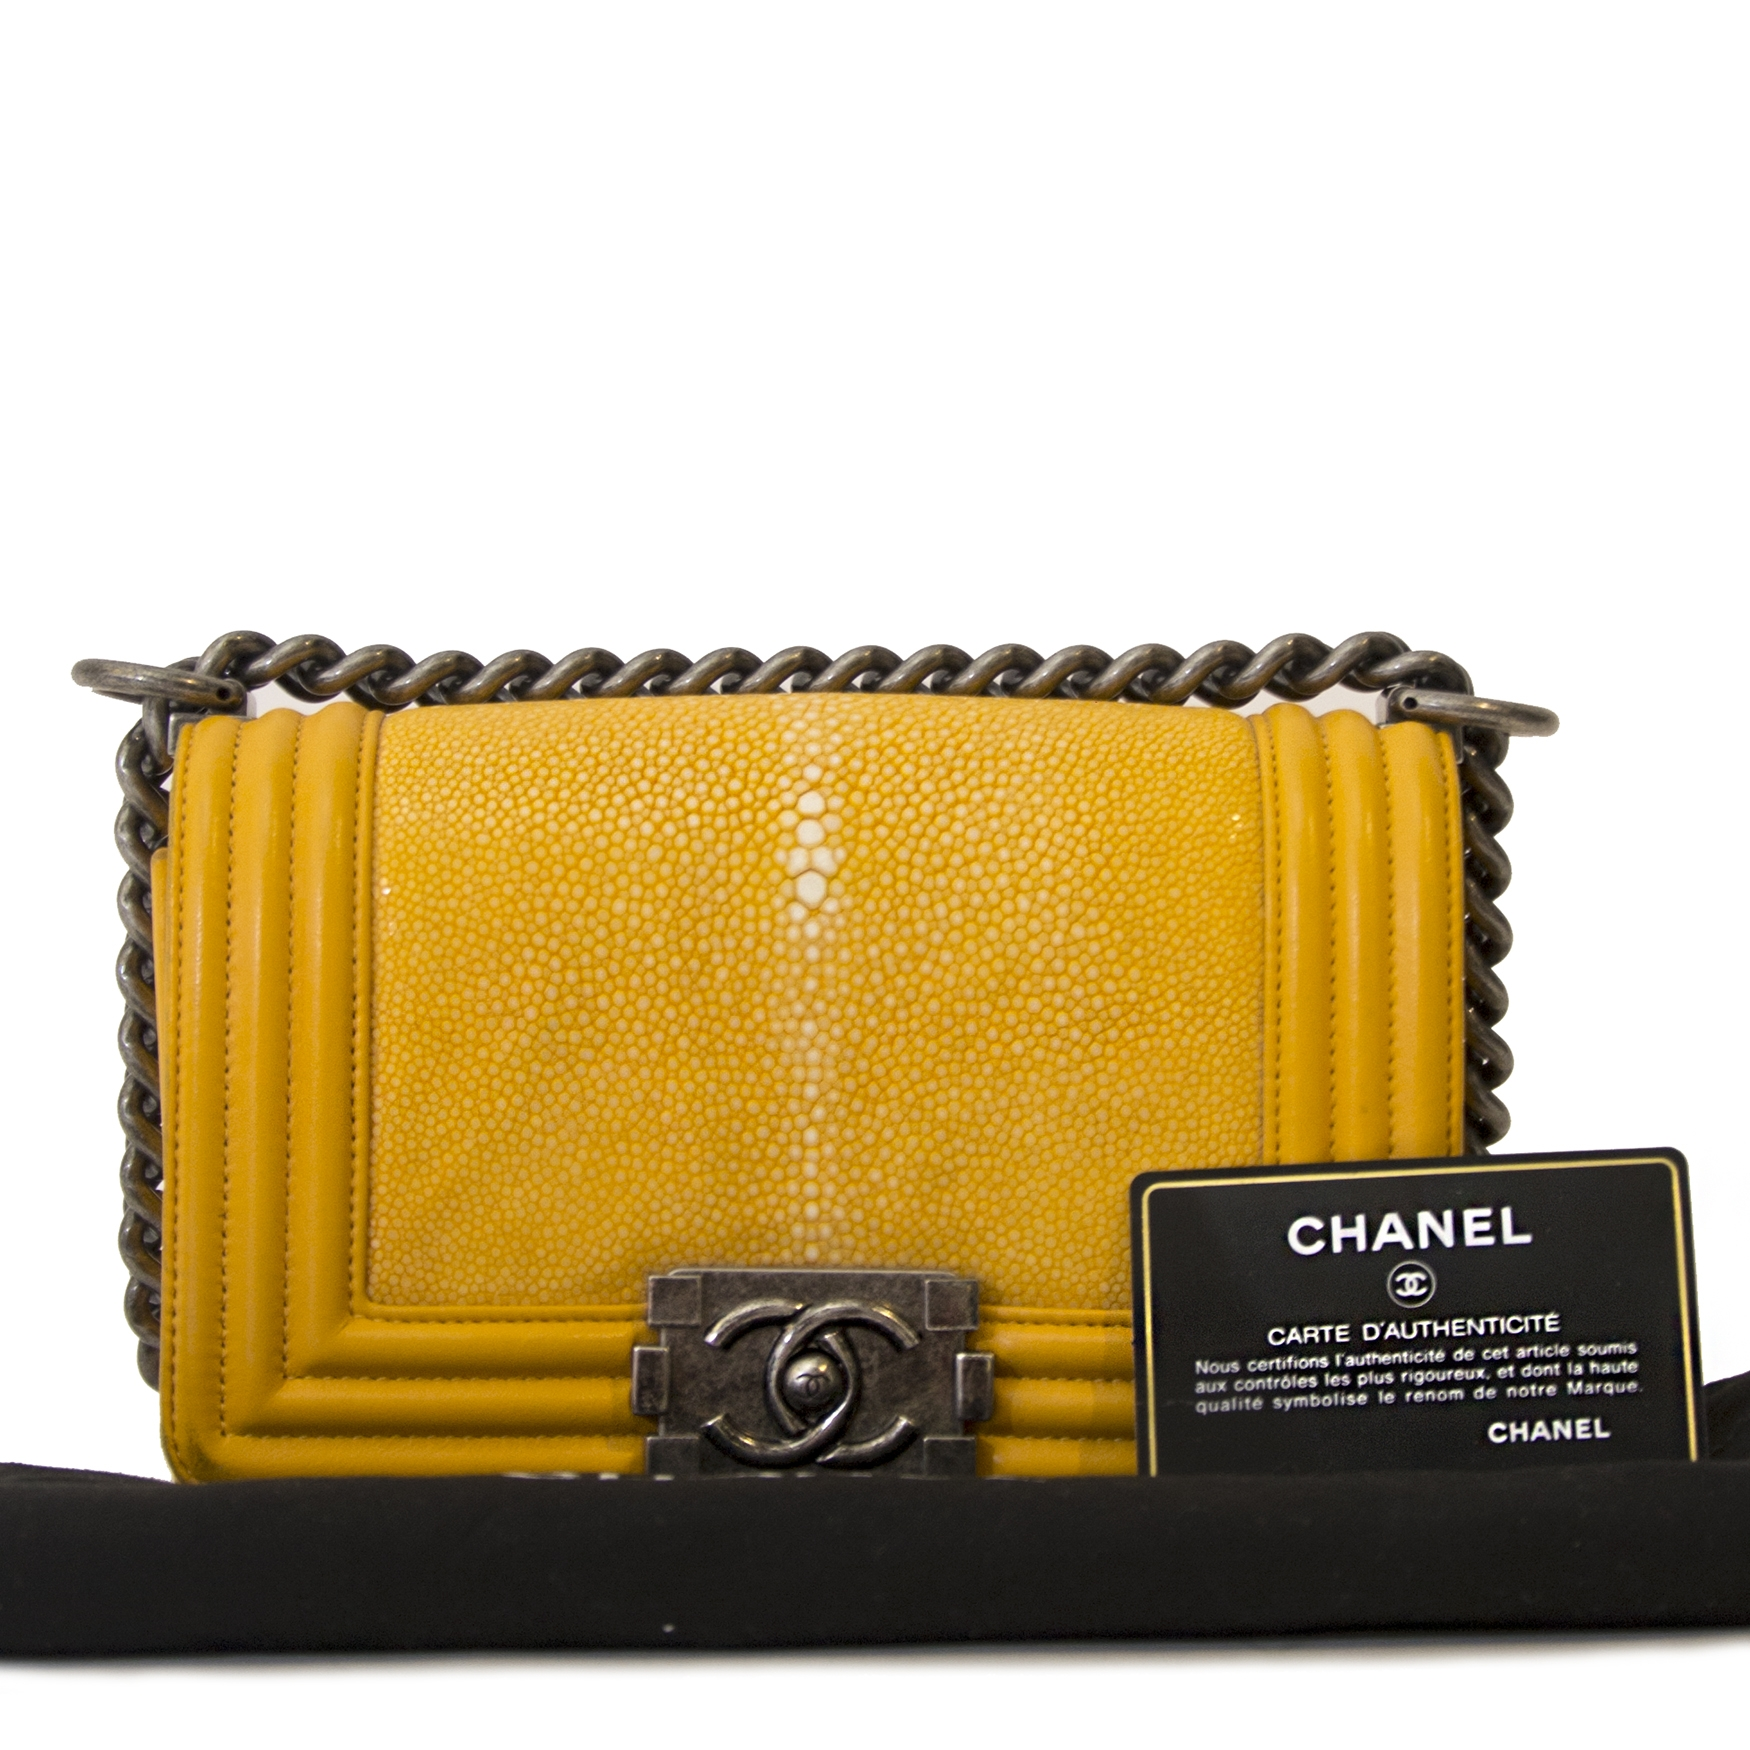 Chanel Small Yellow Galuchat Stingray Lambskin Boy Bag   acheter en ligne seconde main